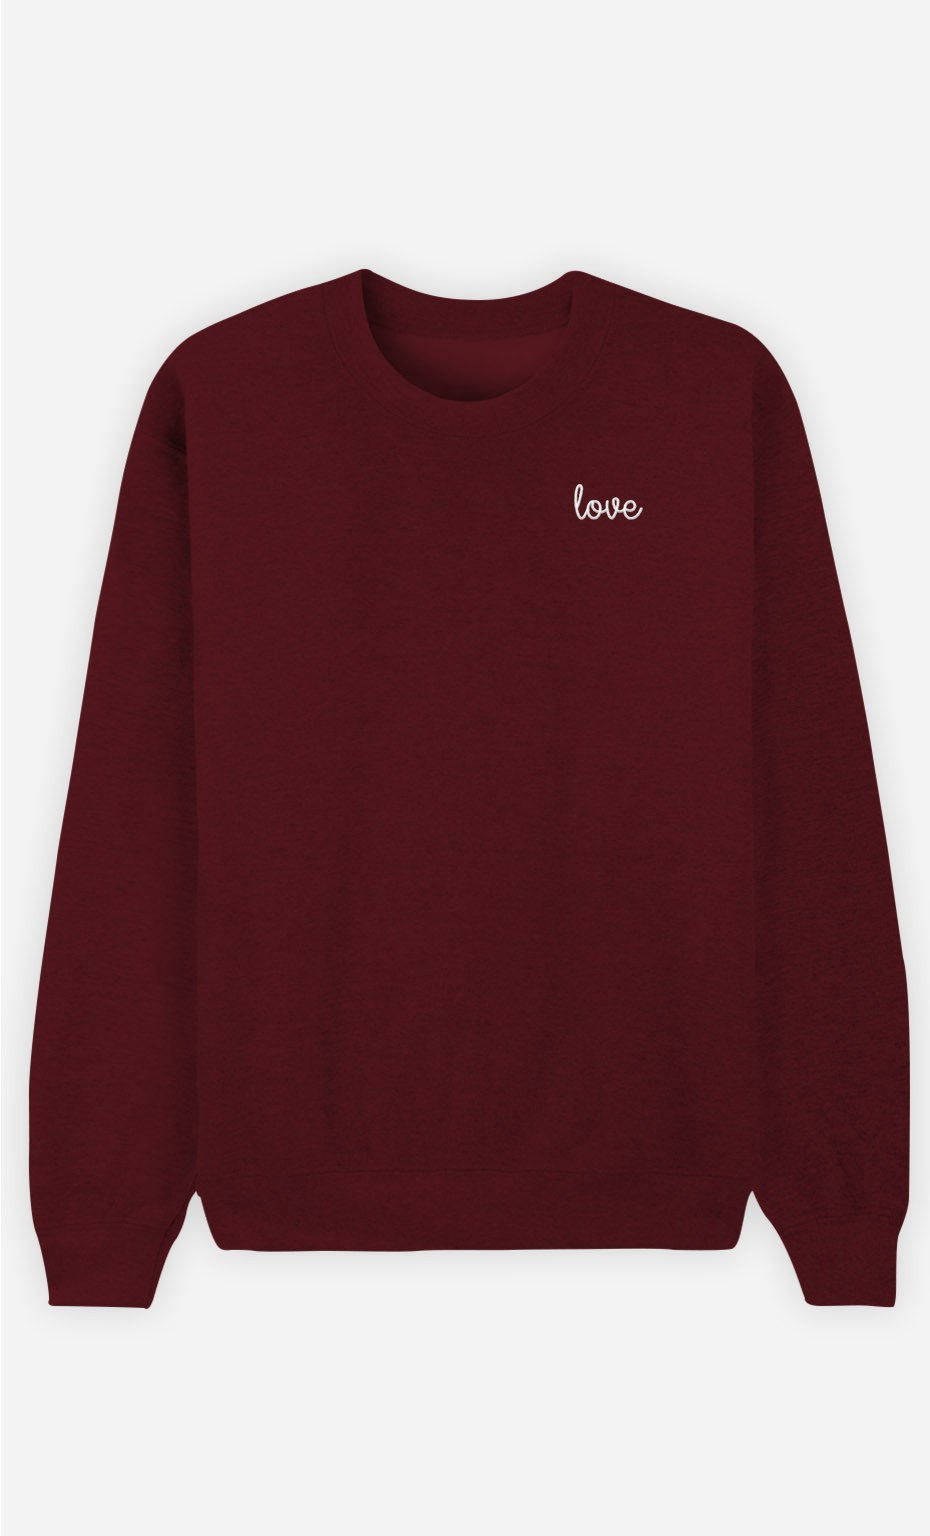 Sweat Bordeaux Love - brodé